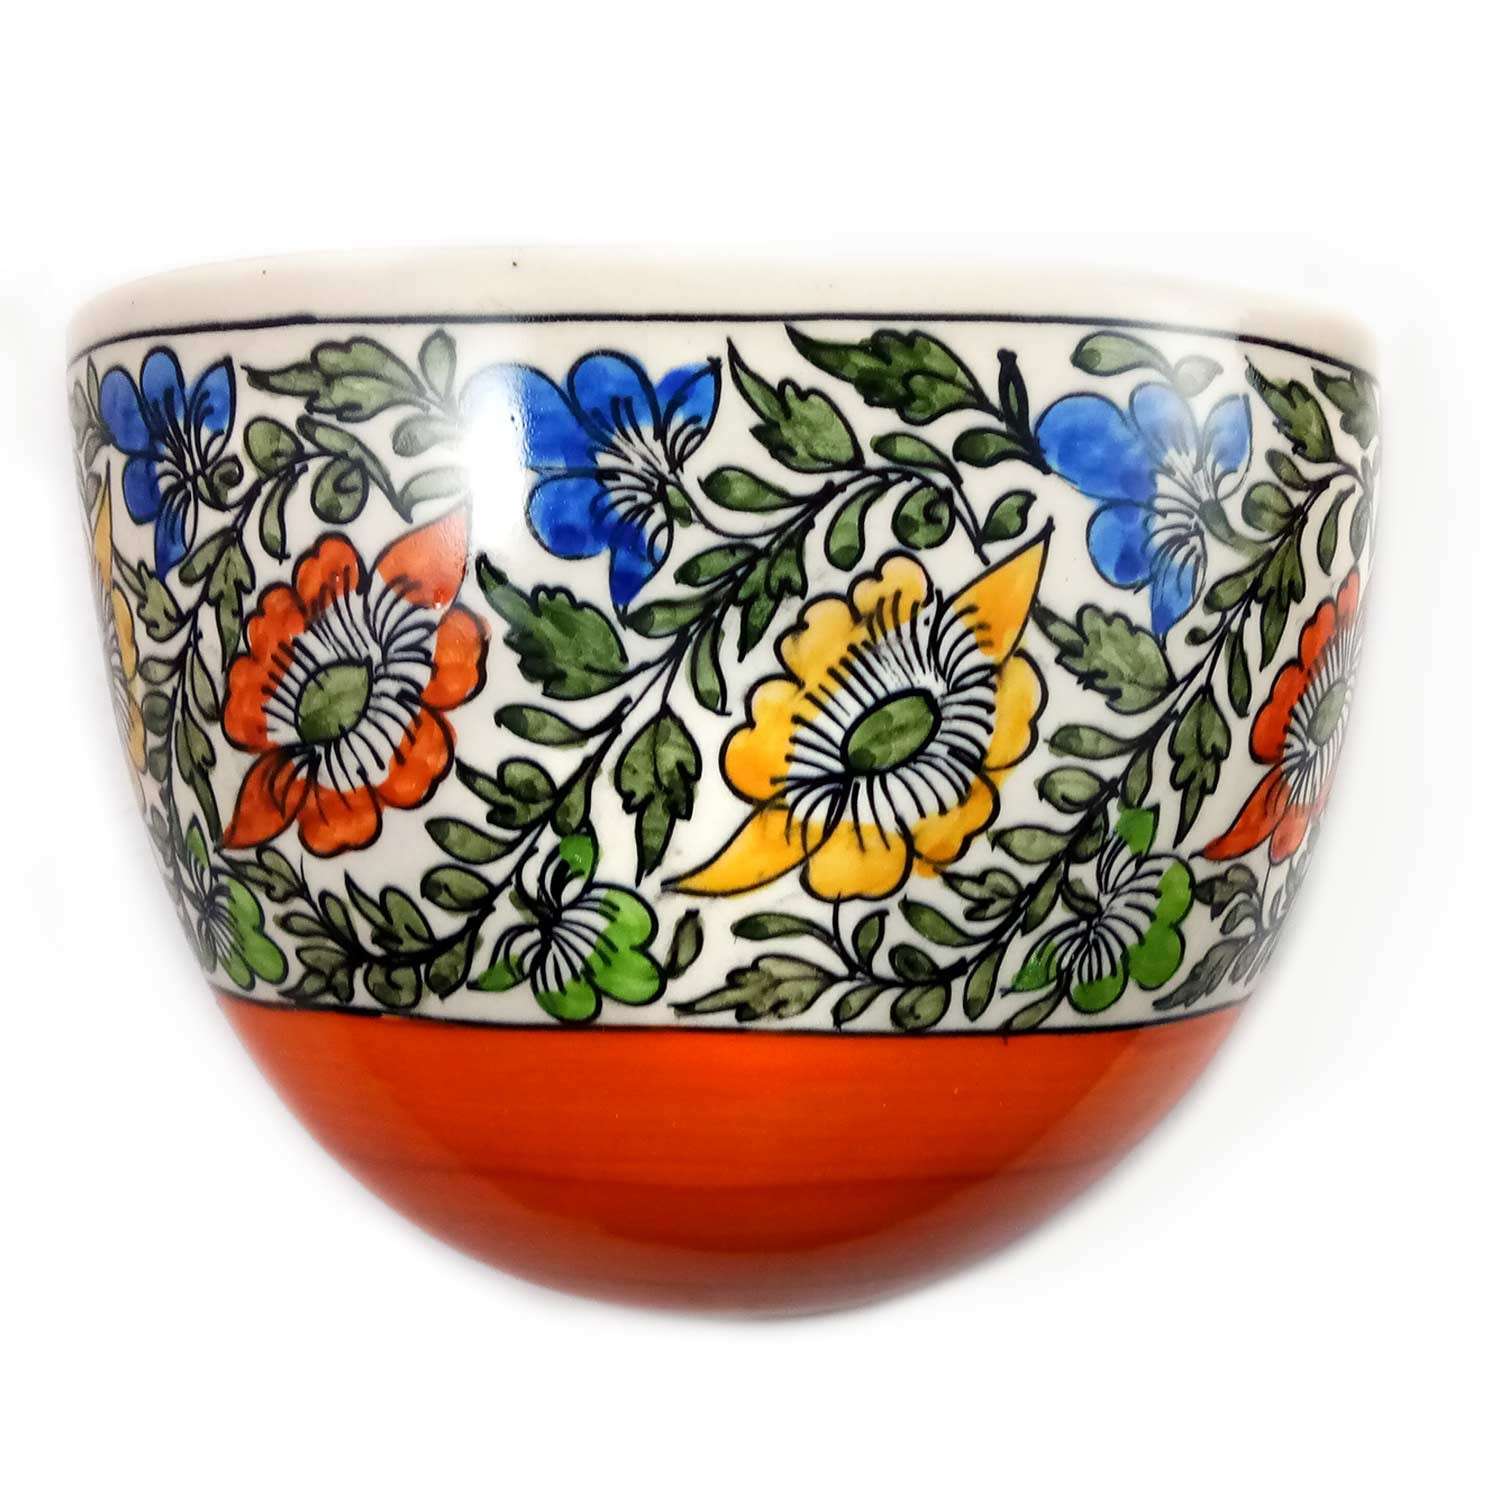 Handmade Orange with Multicolor Flower Painting  Khurja Wall Vase by awarded artisans from UP